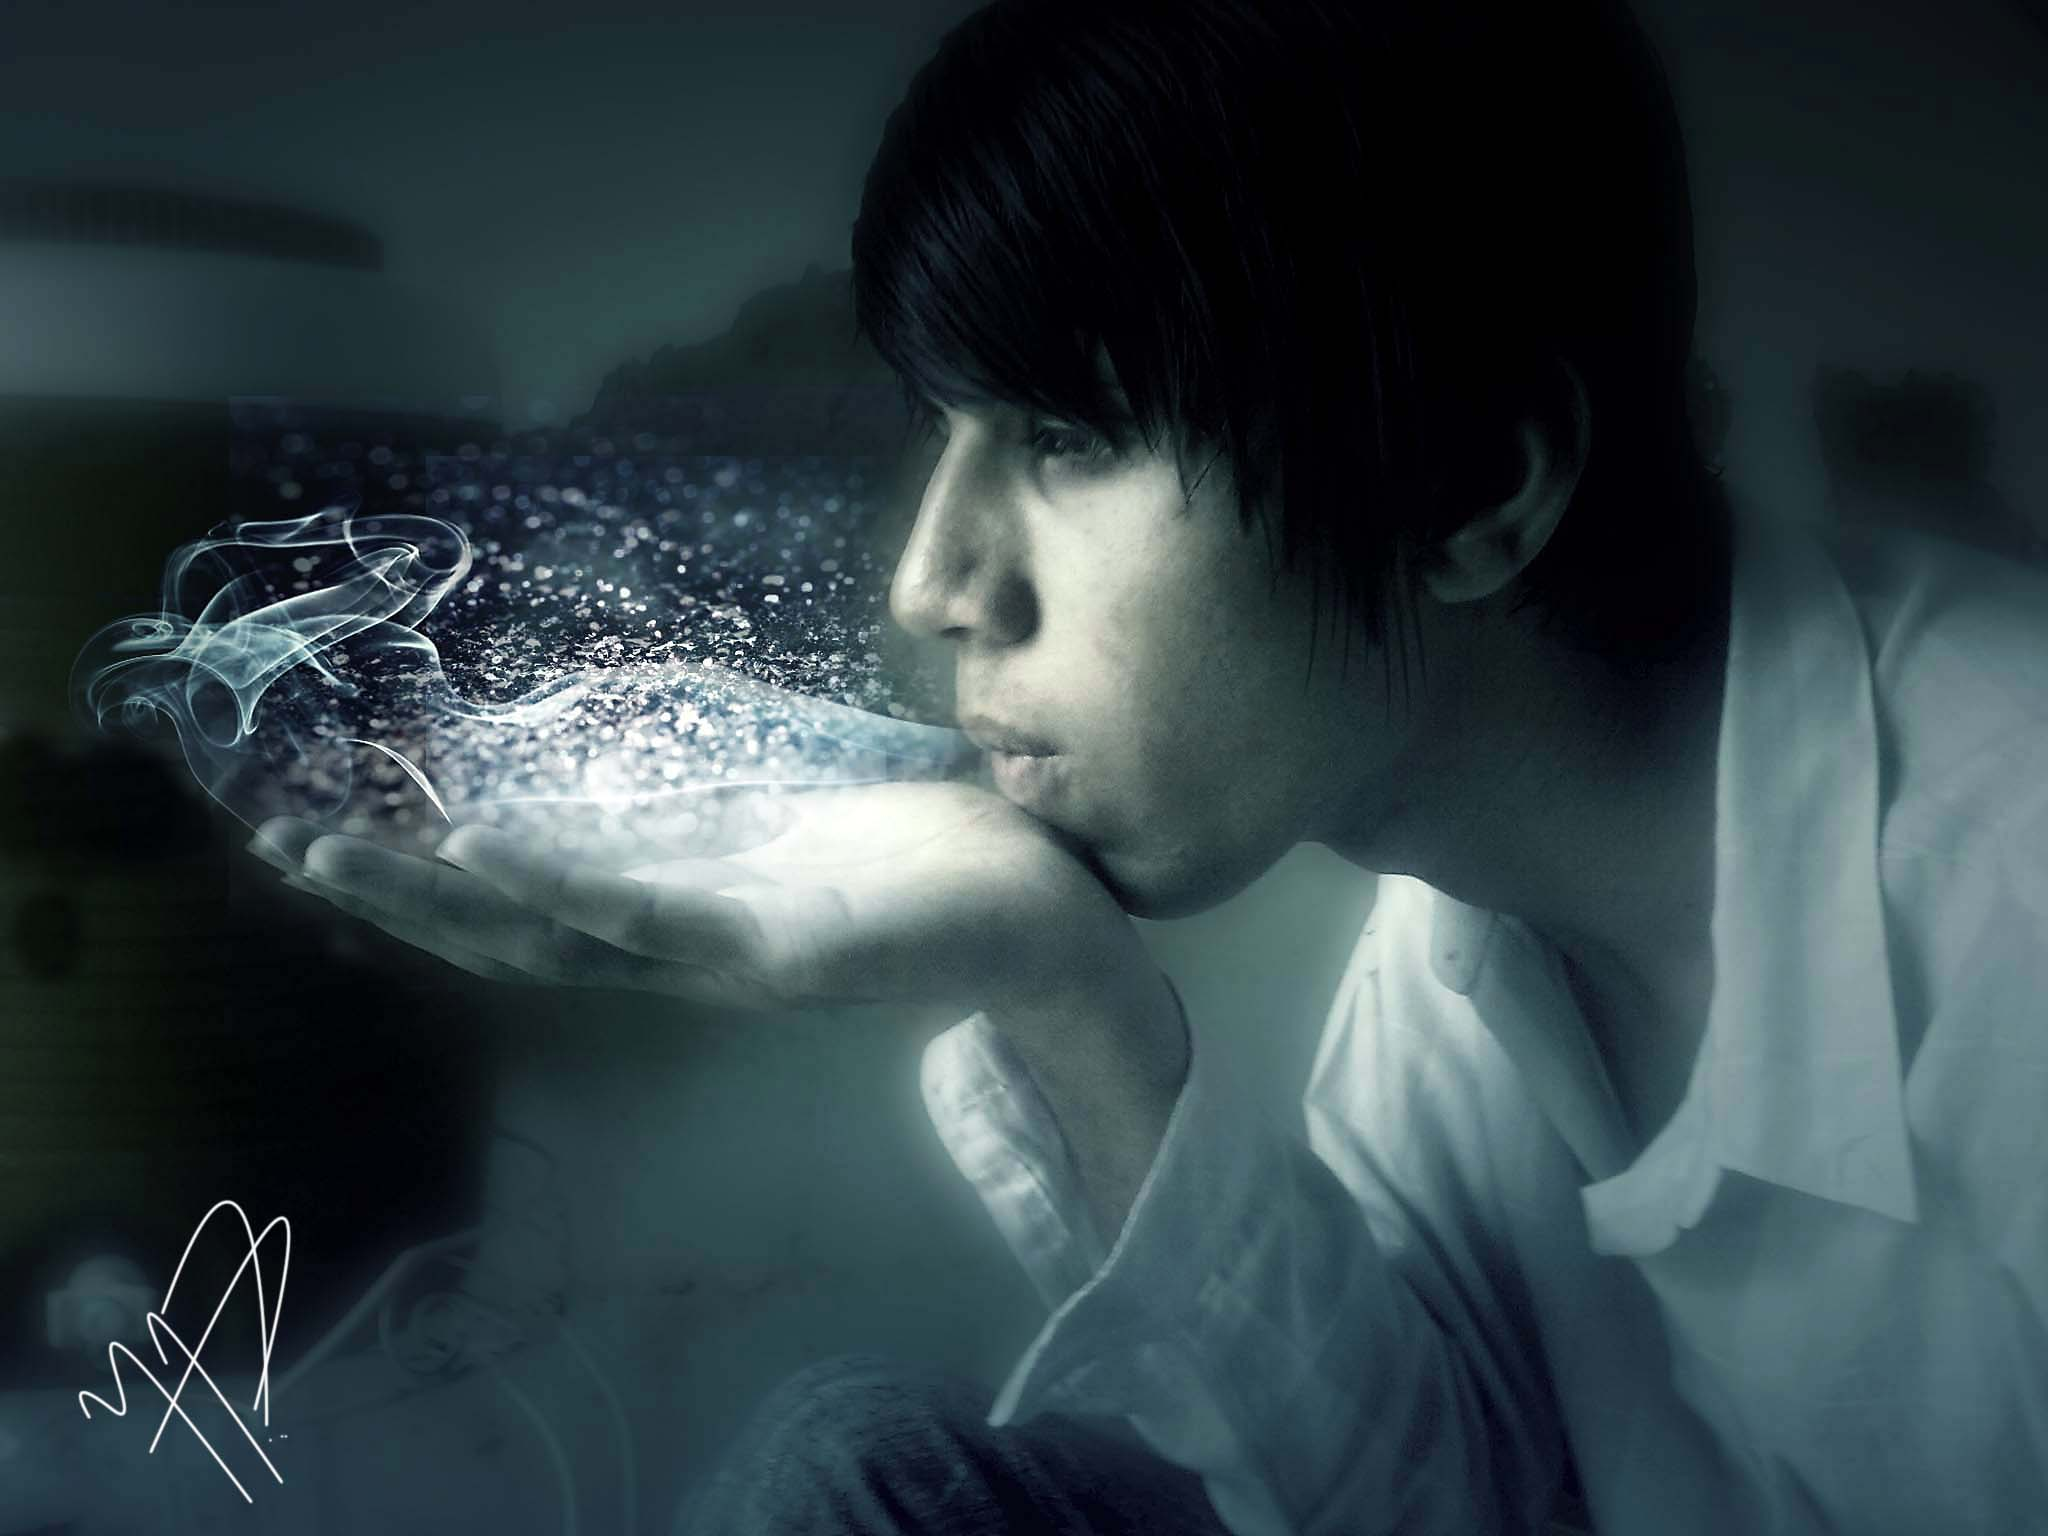 No Love Boy Wallpaper : Arslan Awan - Emo Boys Wallpaper (35035051) - Fanpop